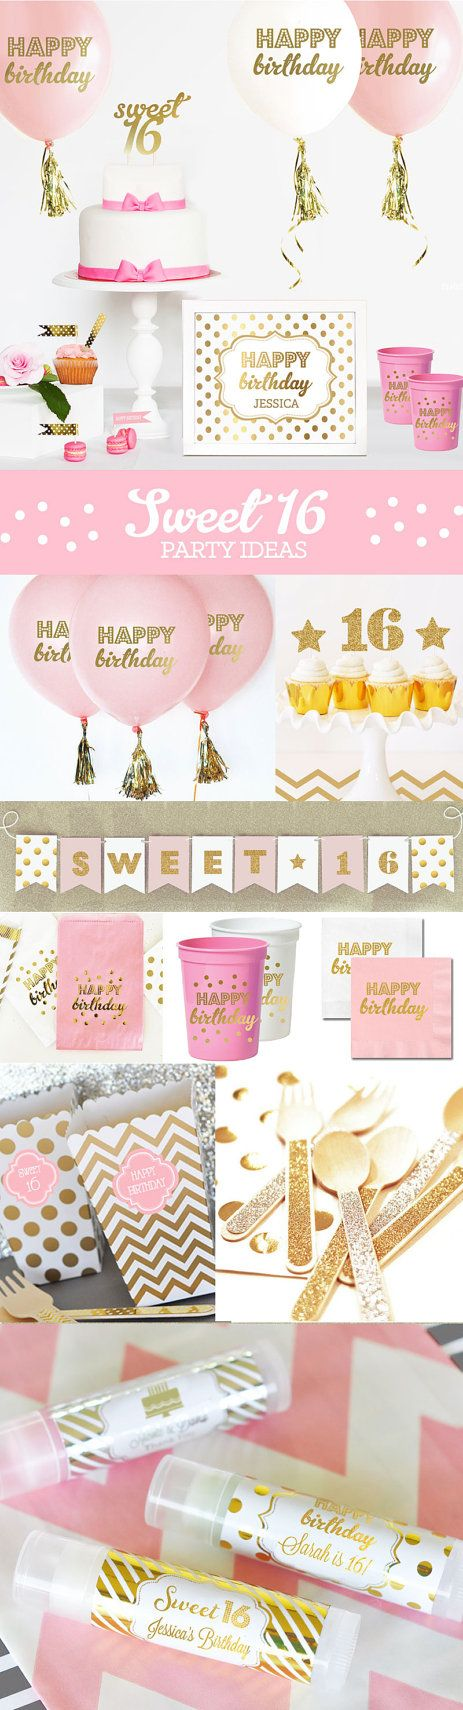 Sweet 16 Party Favors Boxes Sweet 16 Birthday Favors Sweet My Big Day Events, Colorado Weddings, Parties, Corporate Events & More!  Loveland, Fort Collins, Windsor, Cheyenne, Mountains. http://www.mybigdaycompany.com/sweet-16.html  #sweet16 #party #sweetsixteen